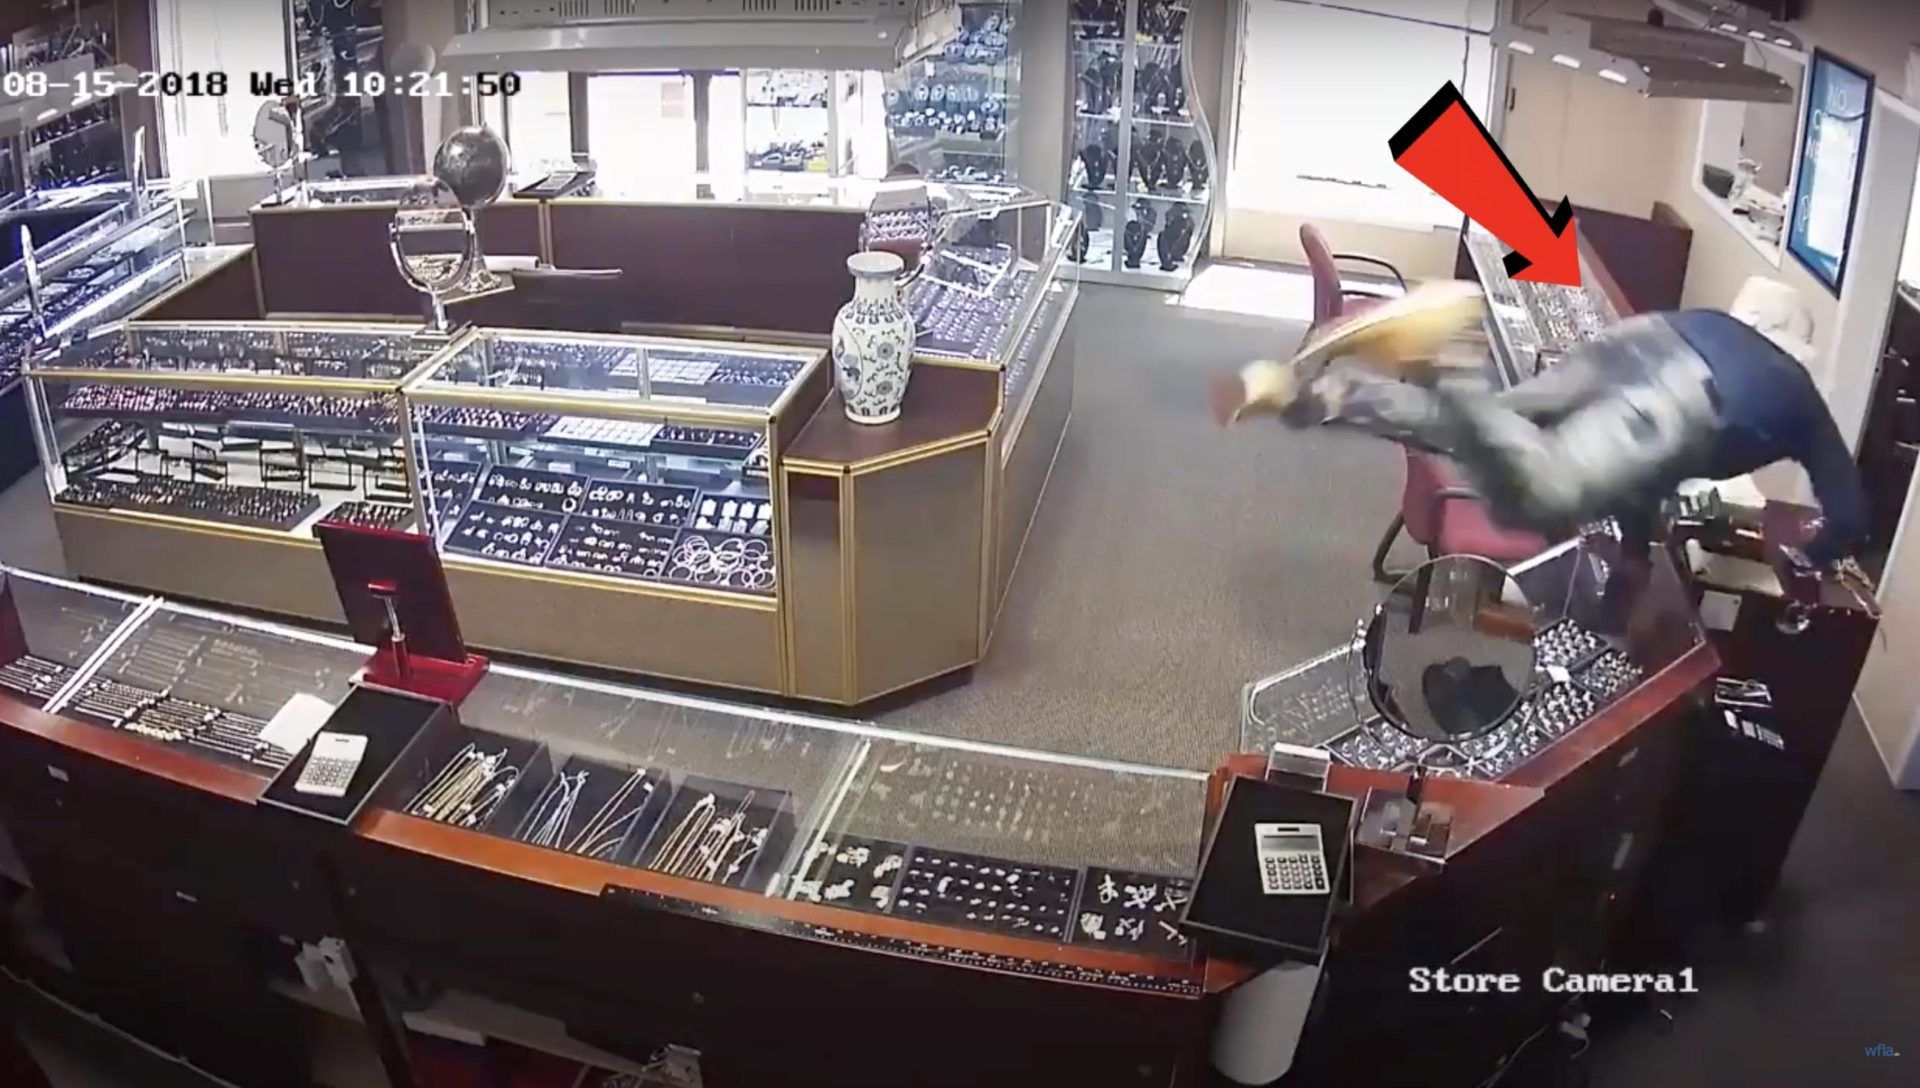 Store Robbery 2020-08-03